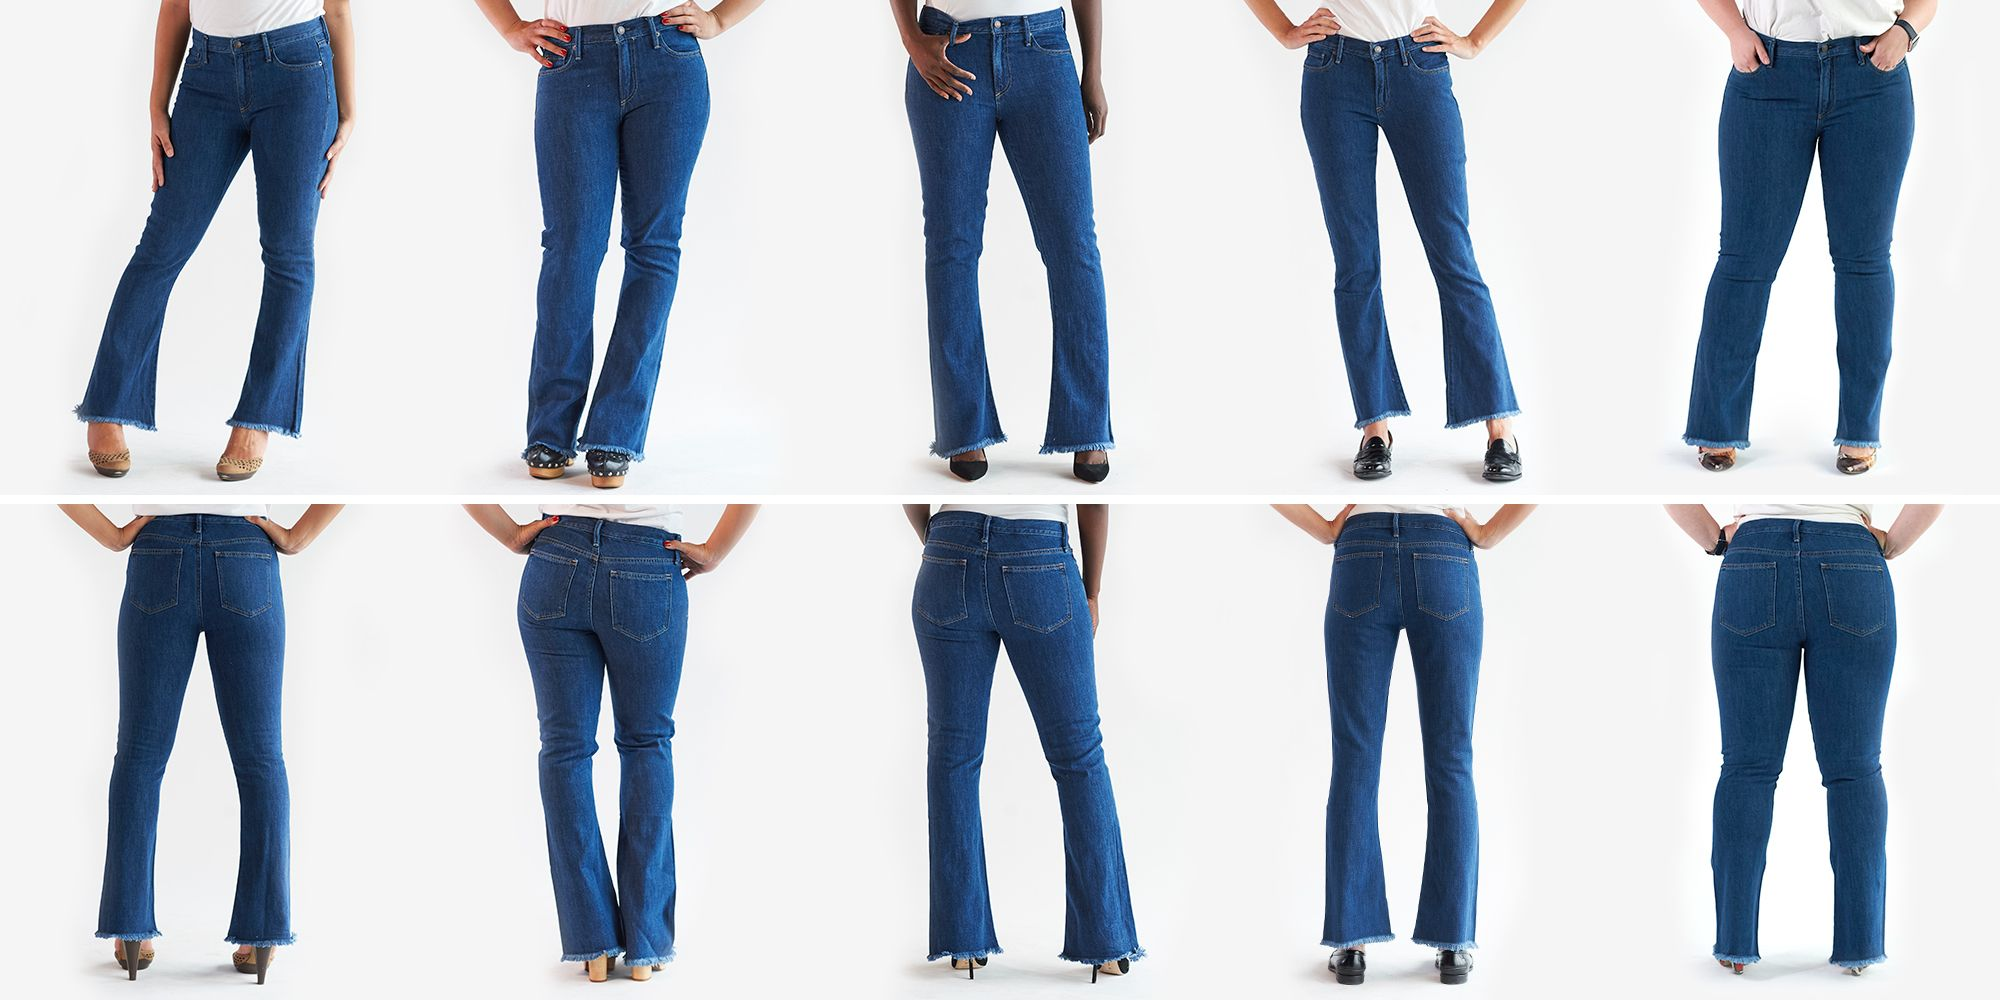 693c230e 1 Day, Five Editors, 50 Styles: Our Quest to Find the Perfect Pair of Fall  Jeans